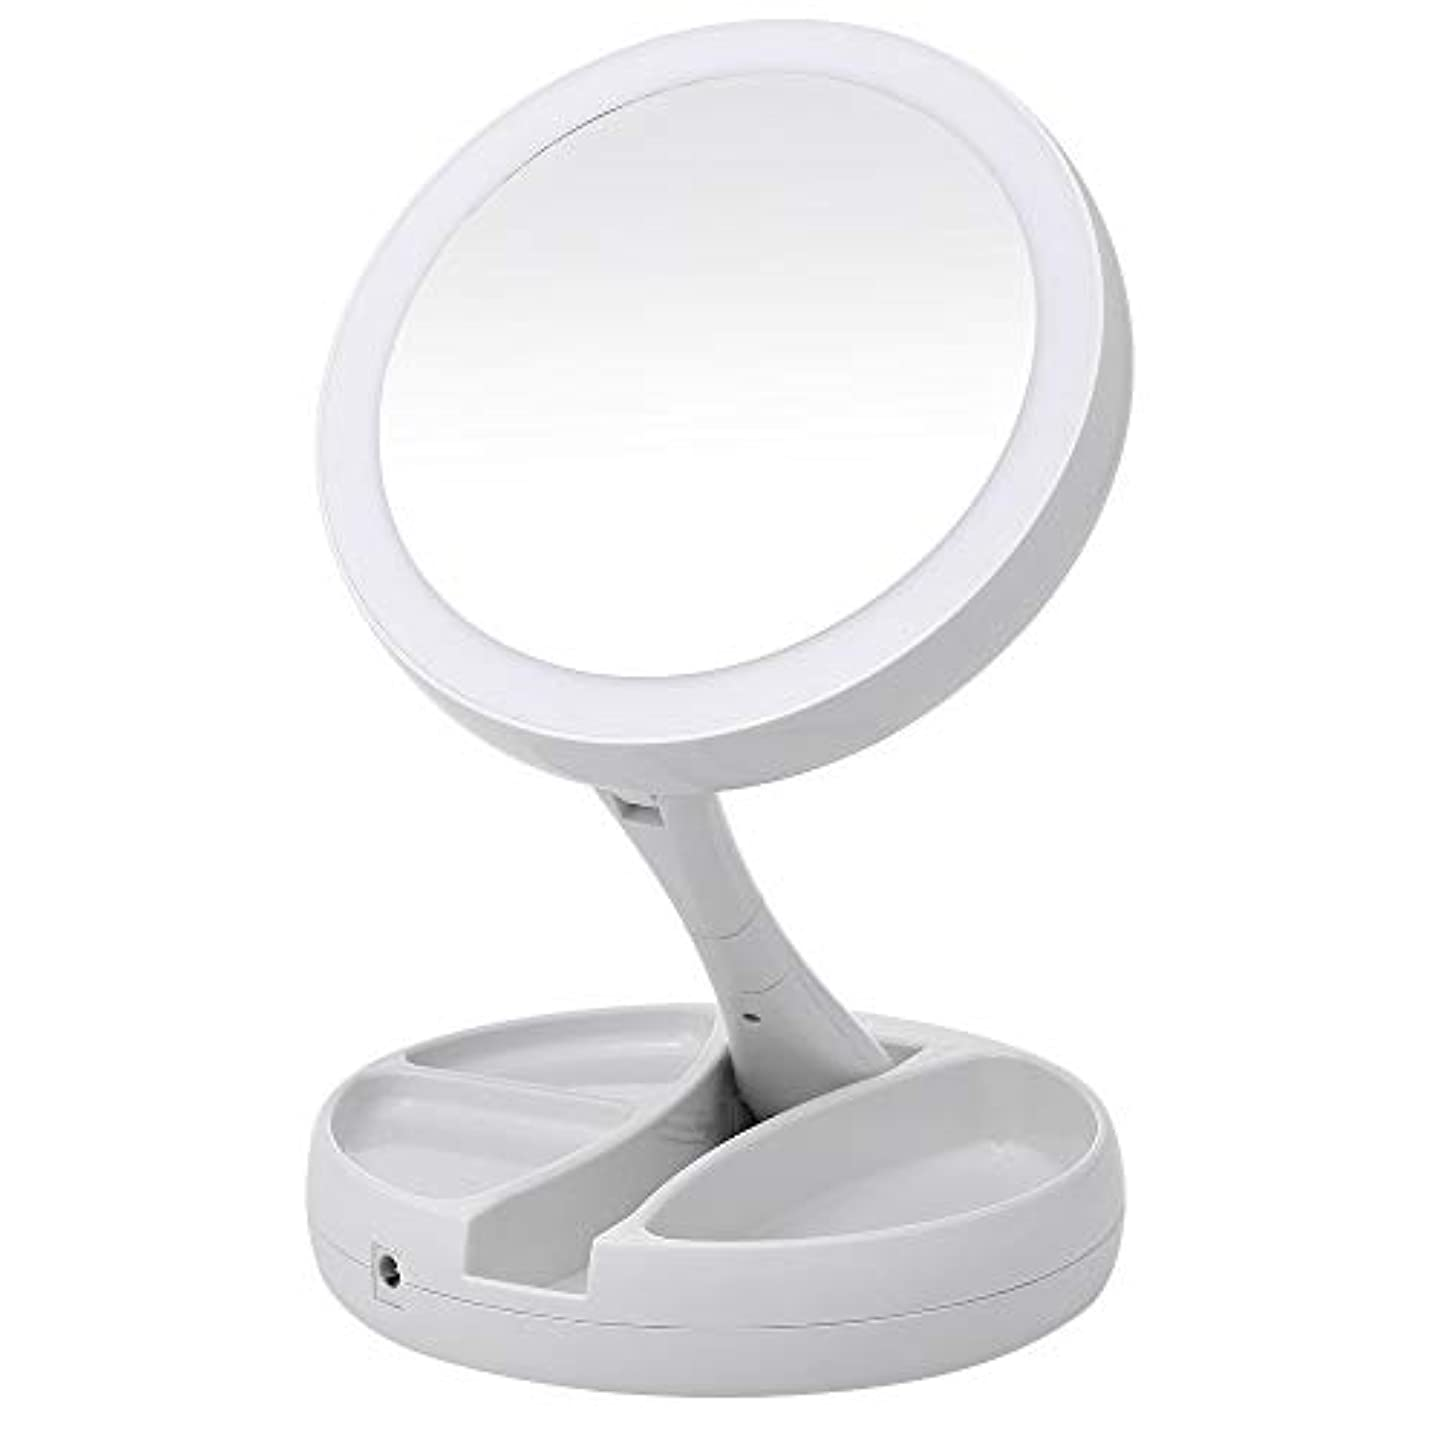 科学麻痺させる役立つPortable LED Lighted Makeup Mirror Vanity Compact Make Up Pocket mirrors Vanity Cosmetic hand Mirror 10X Magnifying Glasses New